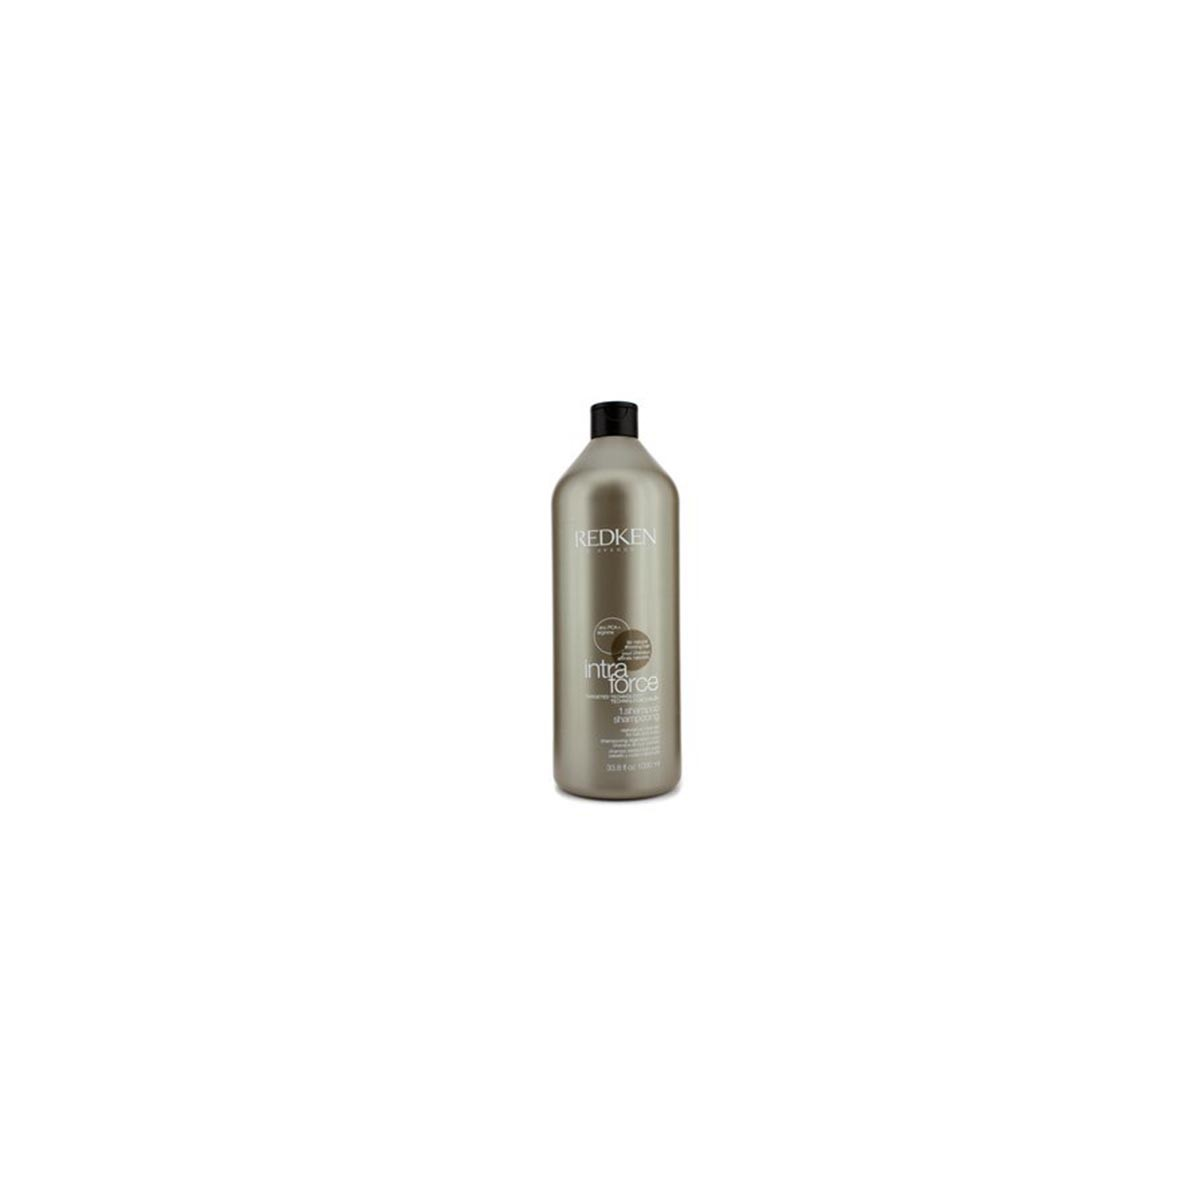 Redken Intraforce Shampoo 1000 ml I